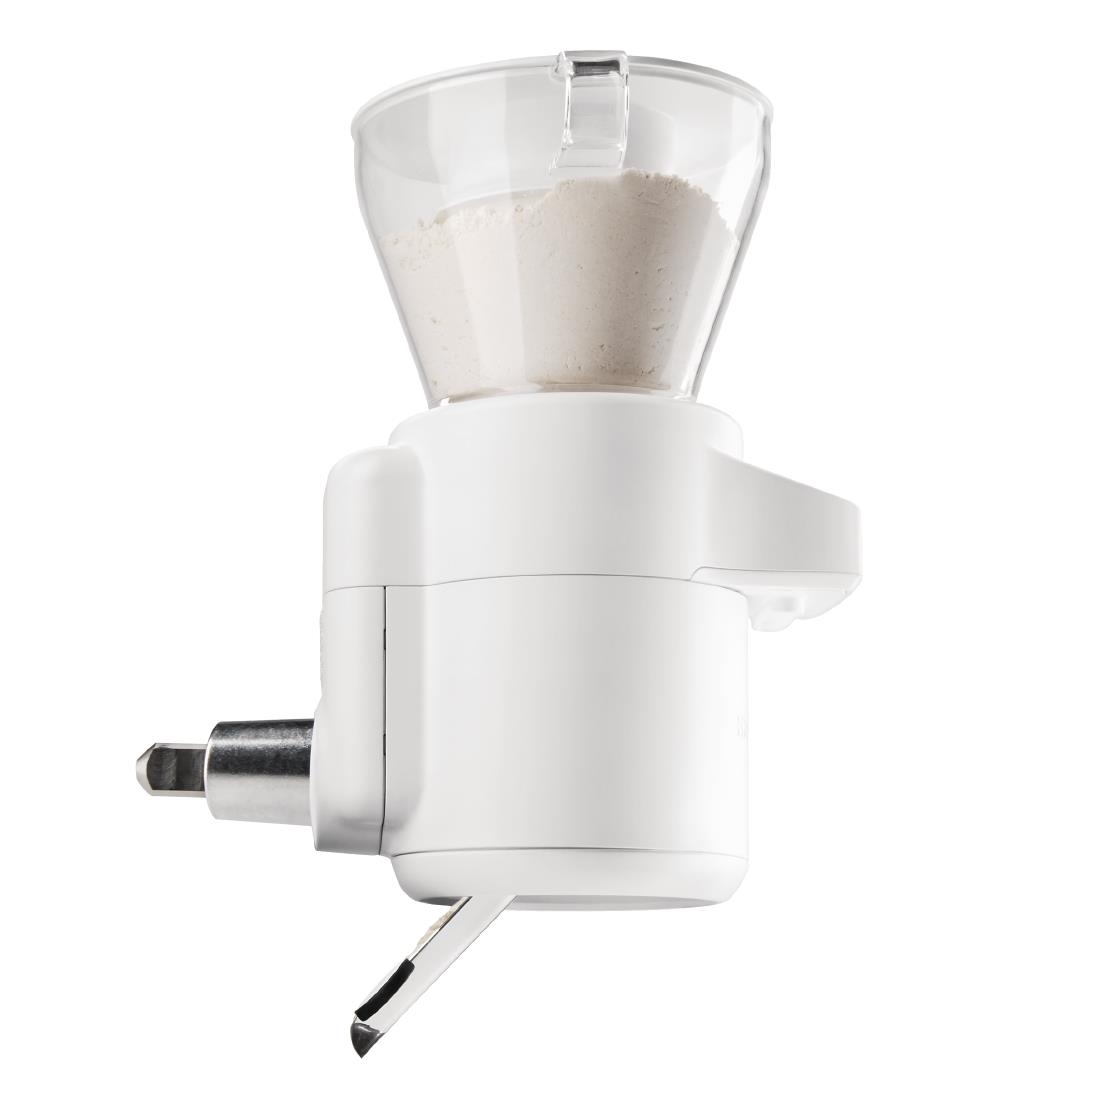 Image of KitchenAid Sifter and Scale Attachment 5KSMSFTA